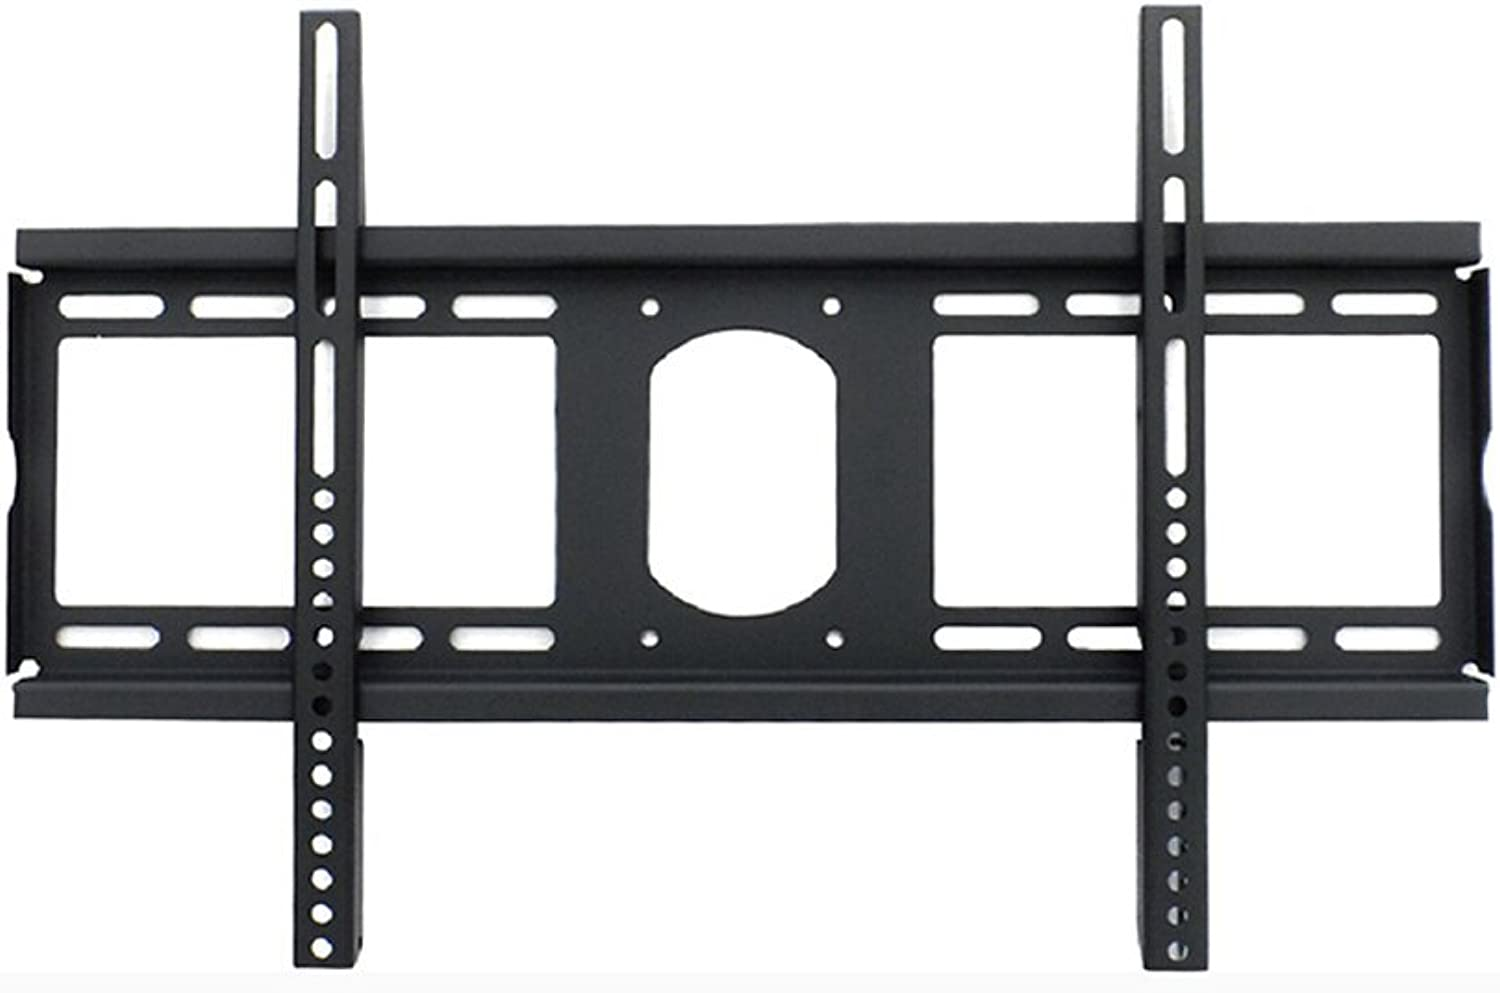 Ultrathin LCD TV Wall Mounted Bracket, 32-48 inch, 42-65 inch Universal Smart TV Stand, Cold Rolled Steel Material Flat TV Stand (Size   Large)